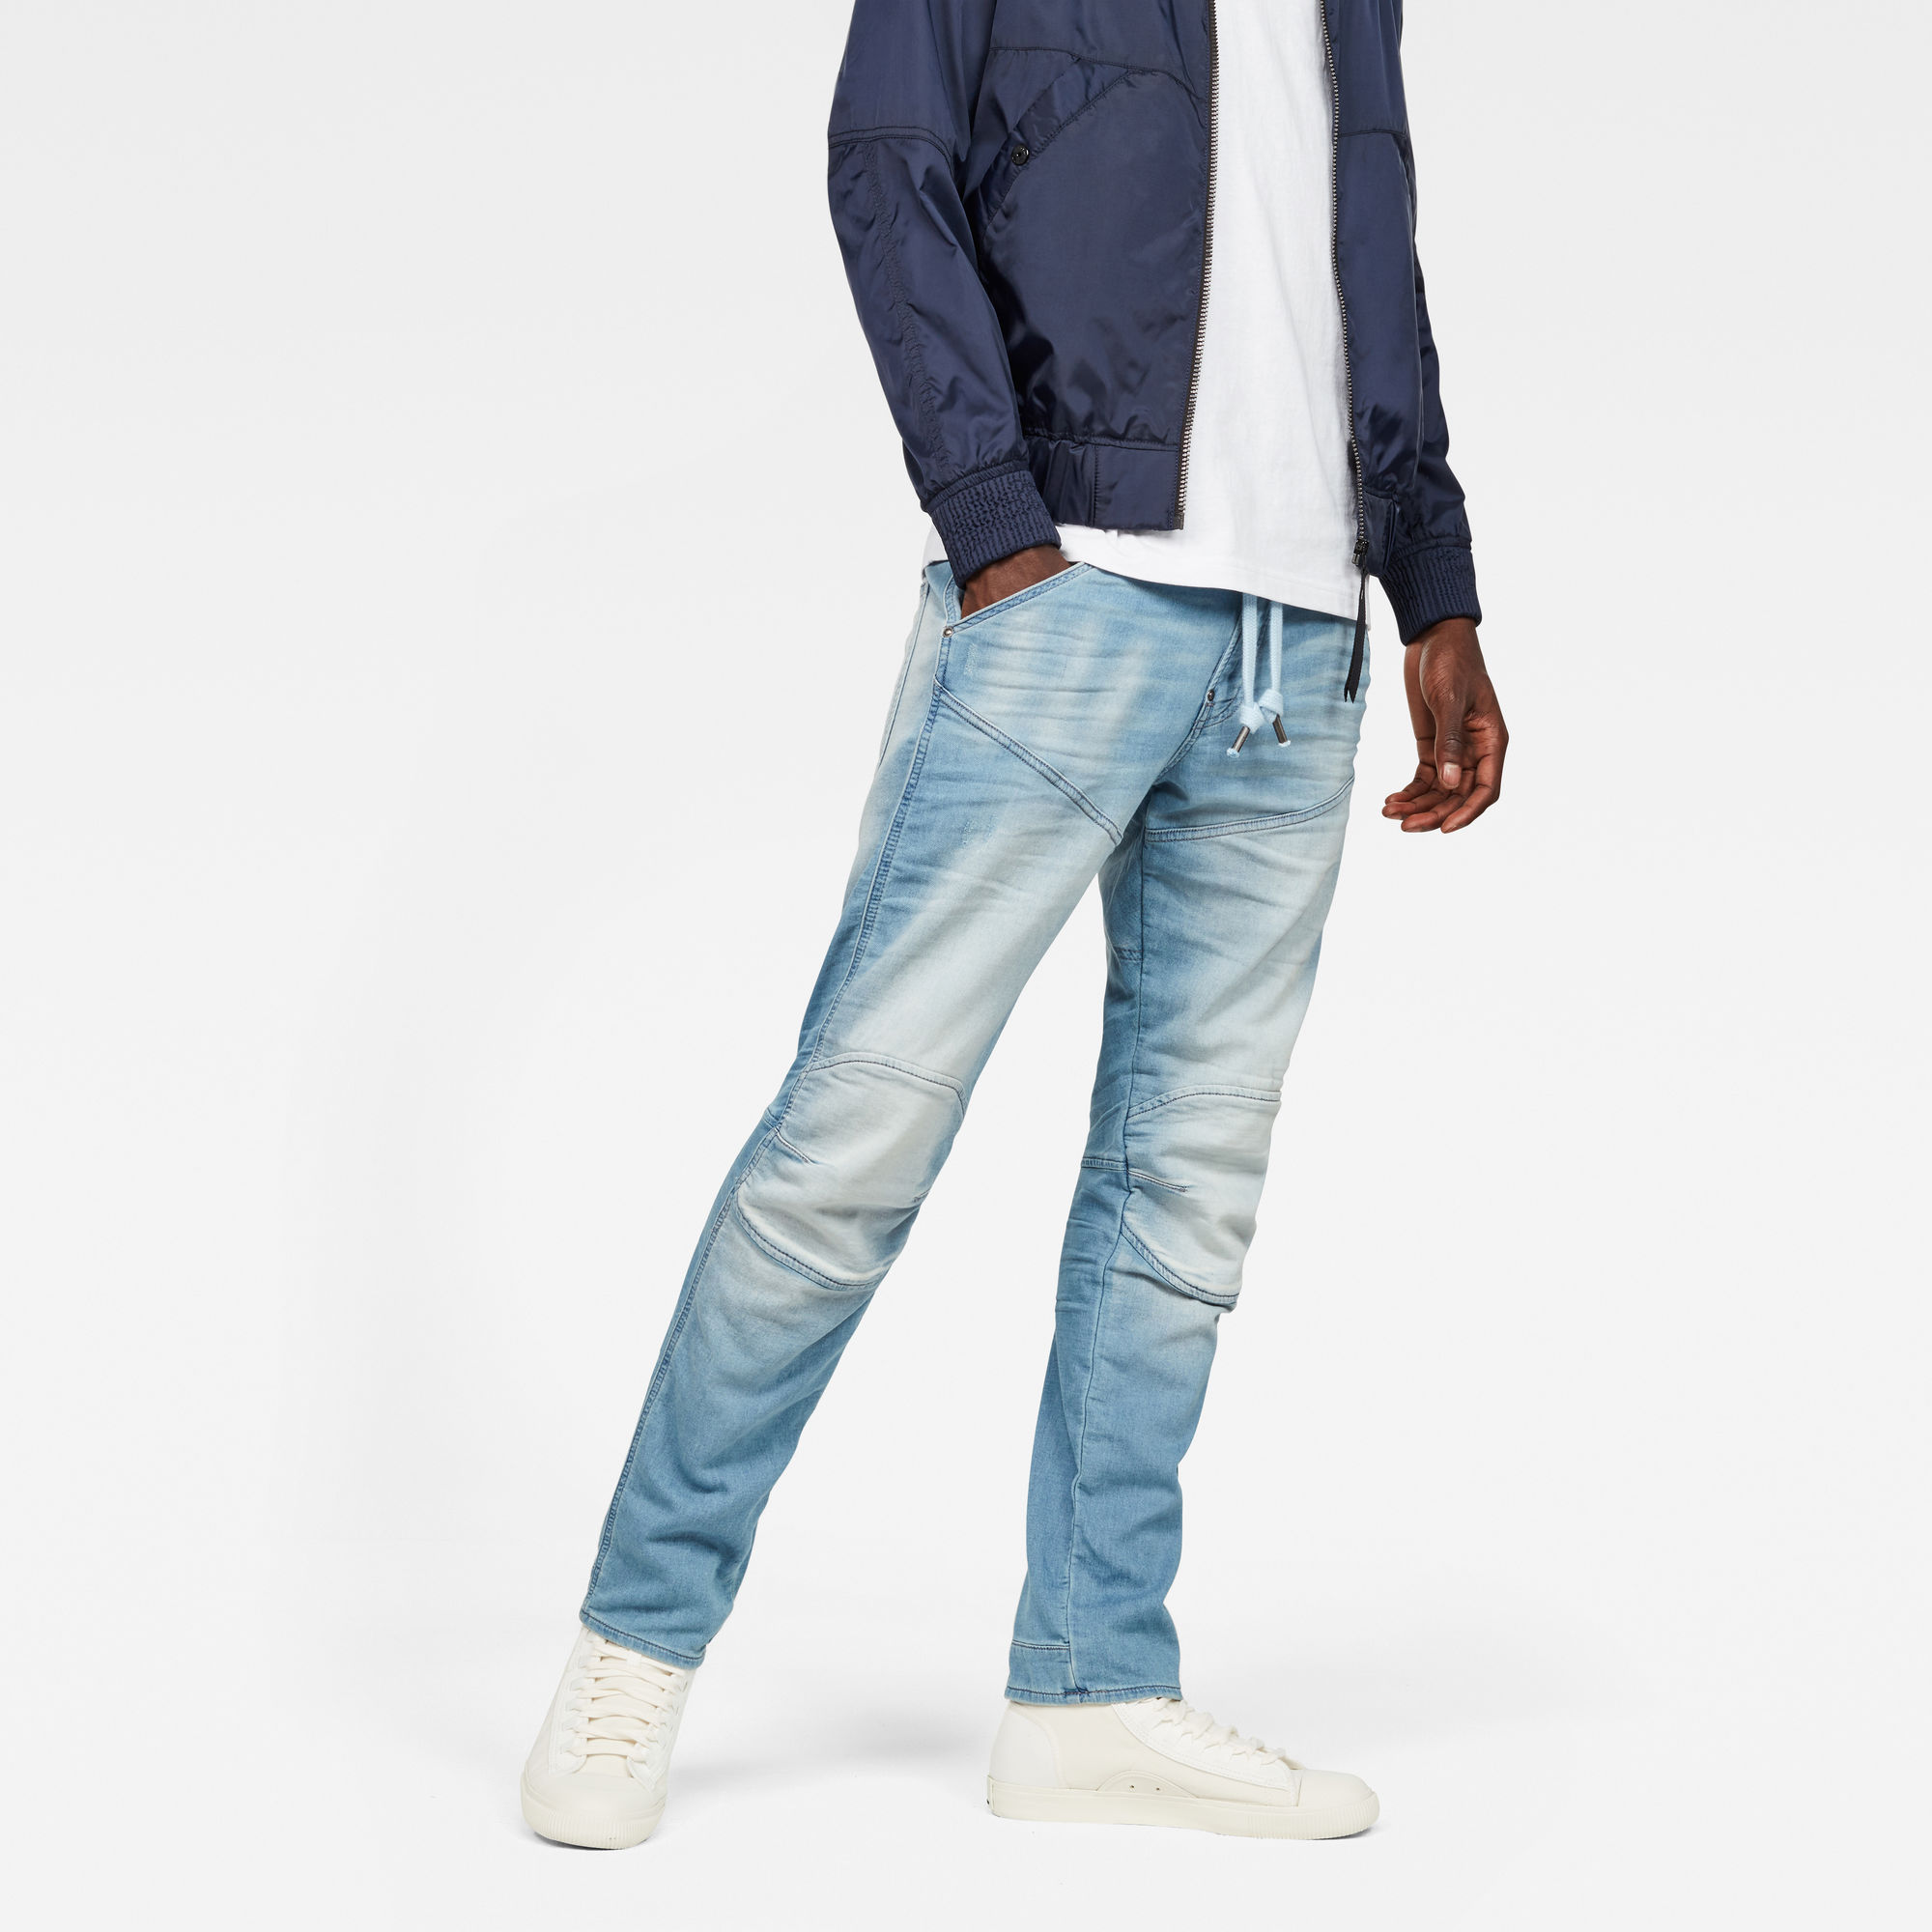 Image of G Star Raw 5620 G-Star Elwood 3D Sport Tapered Jeans